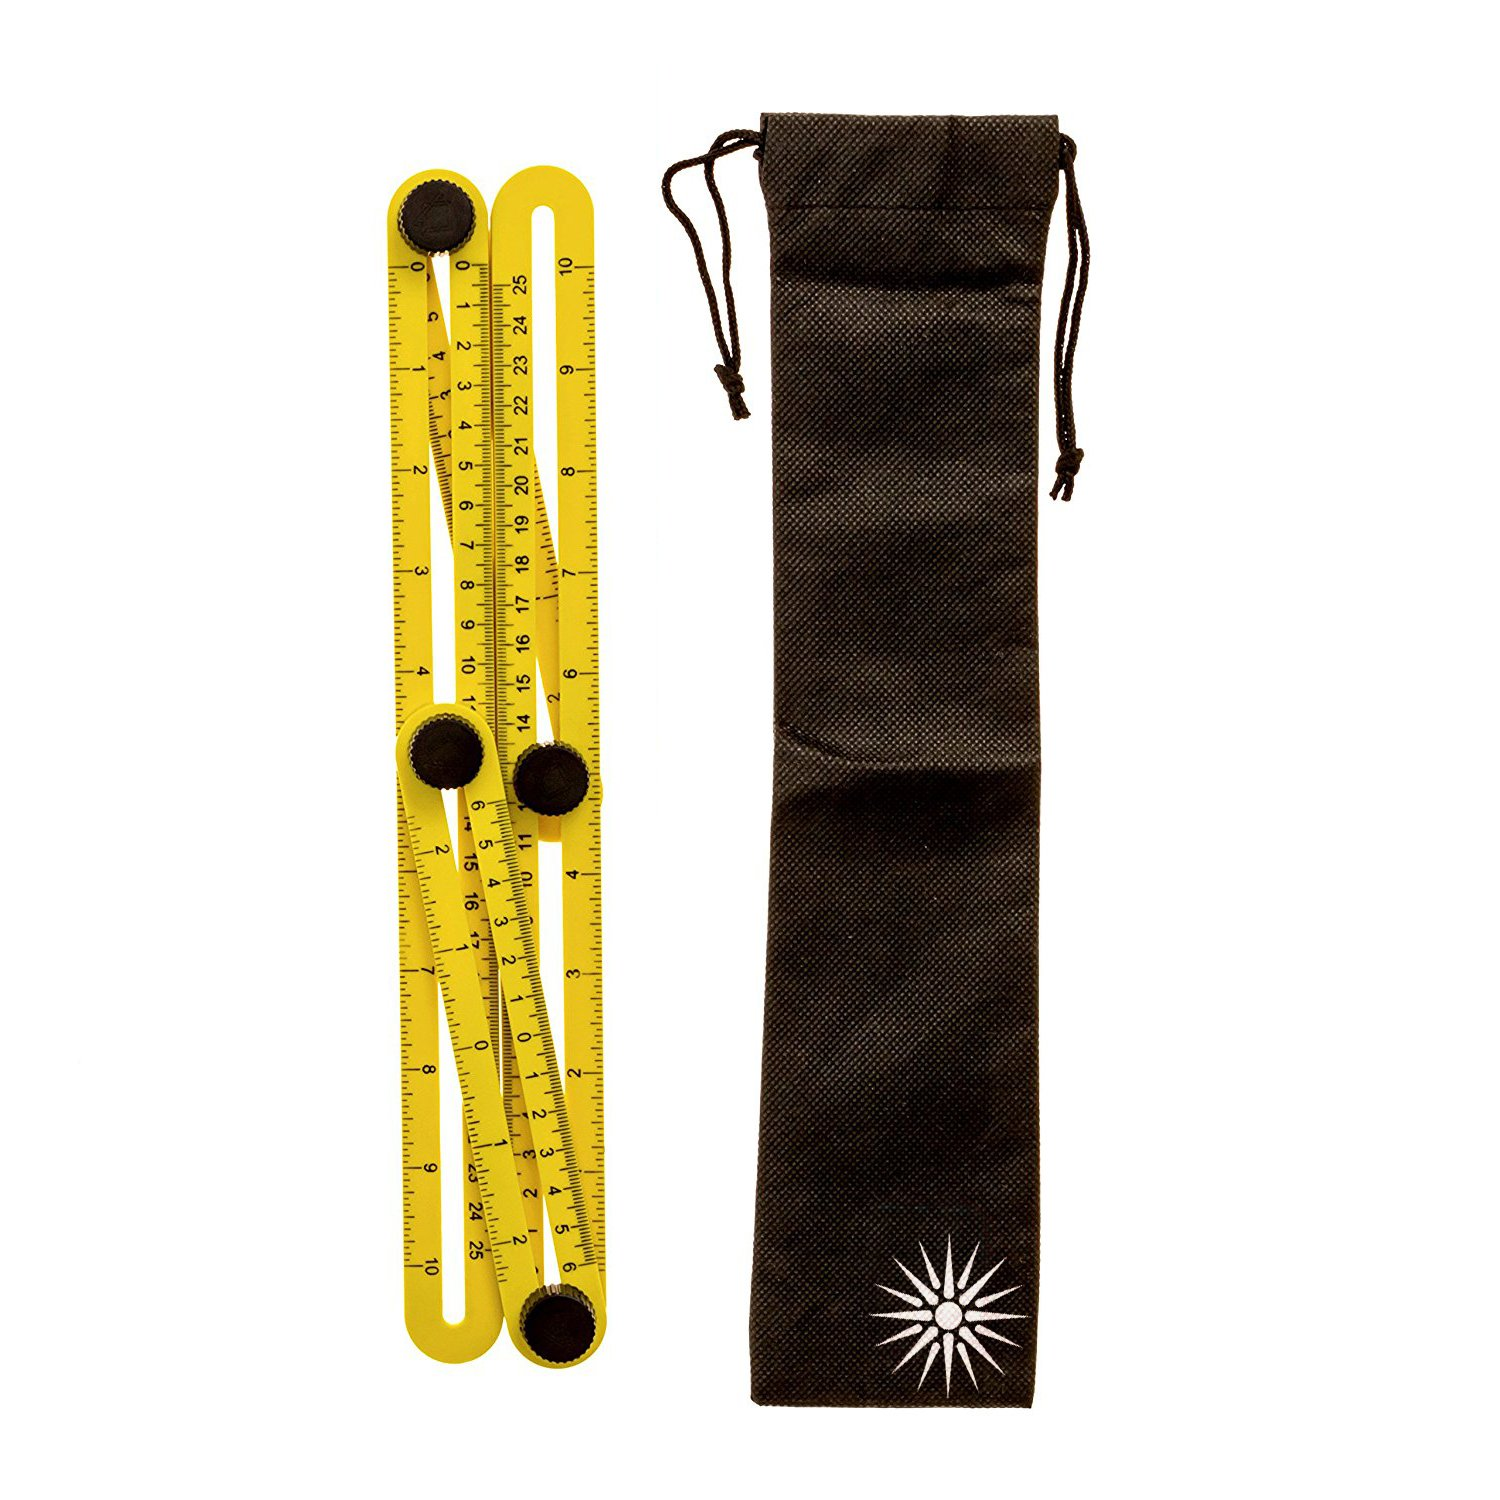 Multi-Angle Measuring Ruler | Free Storage Bag | Template Tool | Measures All Angles | Easy Angle Ruler | for Handymen | Builders | Craftsmen | Carpenters | Contractors | Masonry